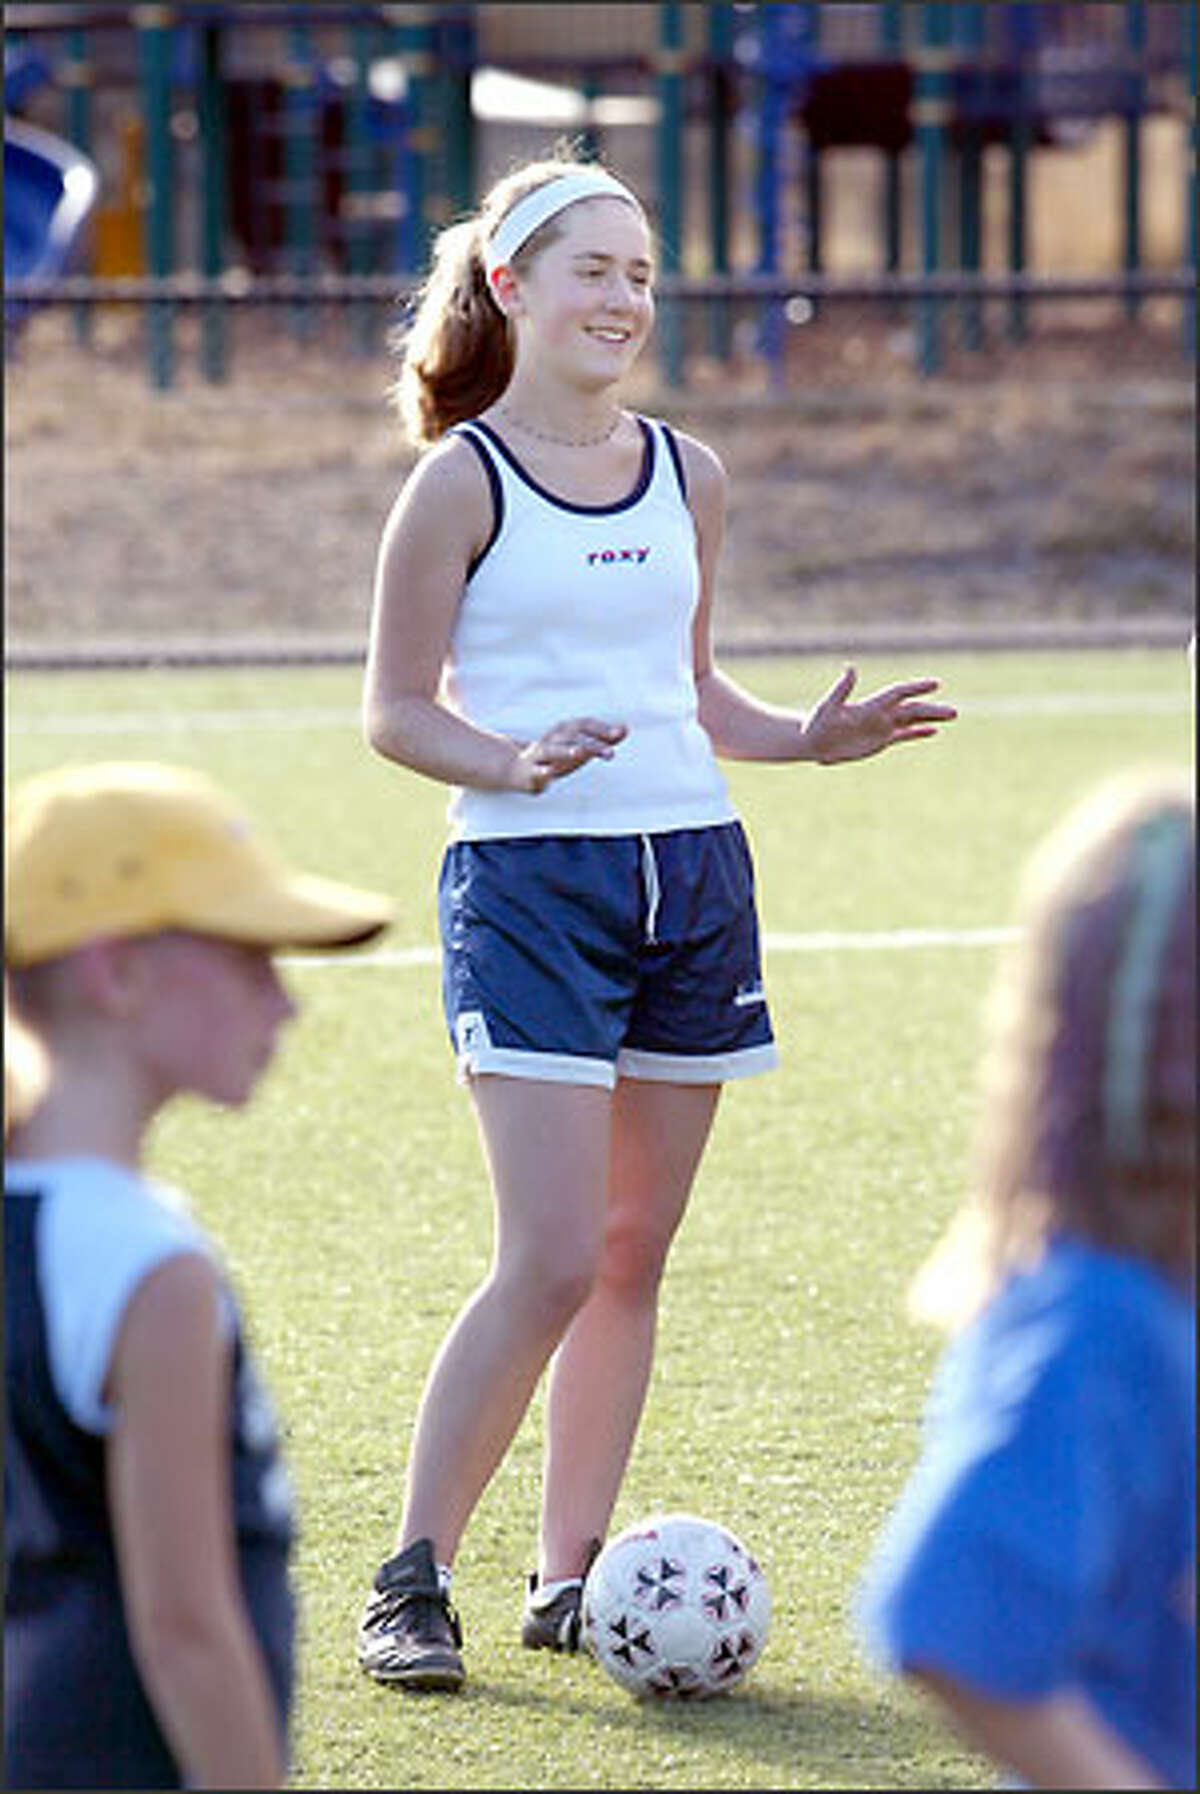 Emily Cranny, 14, who has an implanted defibrillator, can't play soccer, so she helps her dad coach.